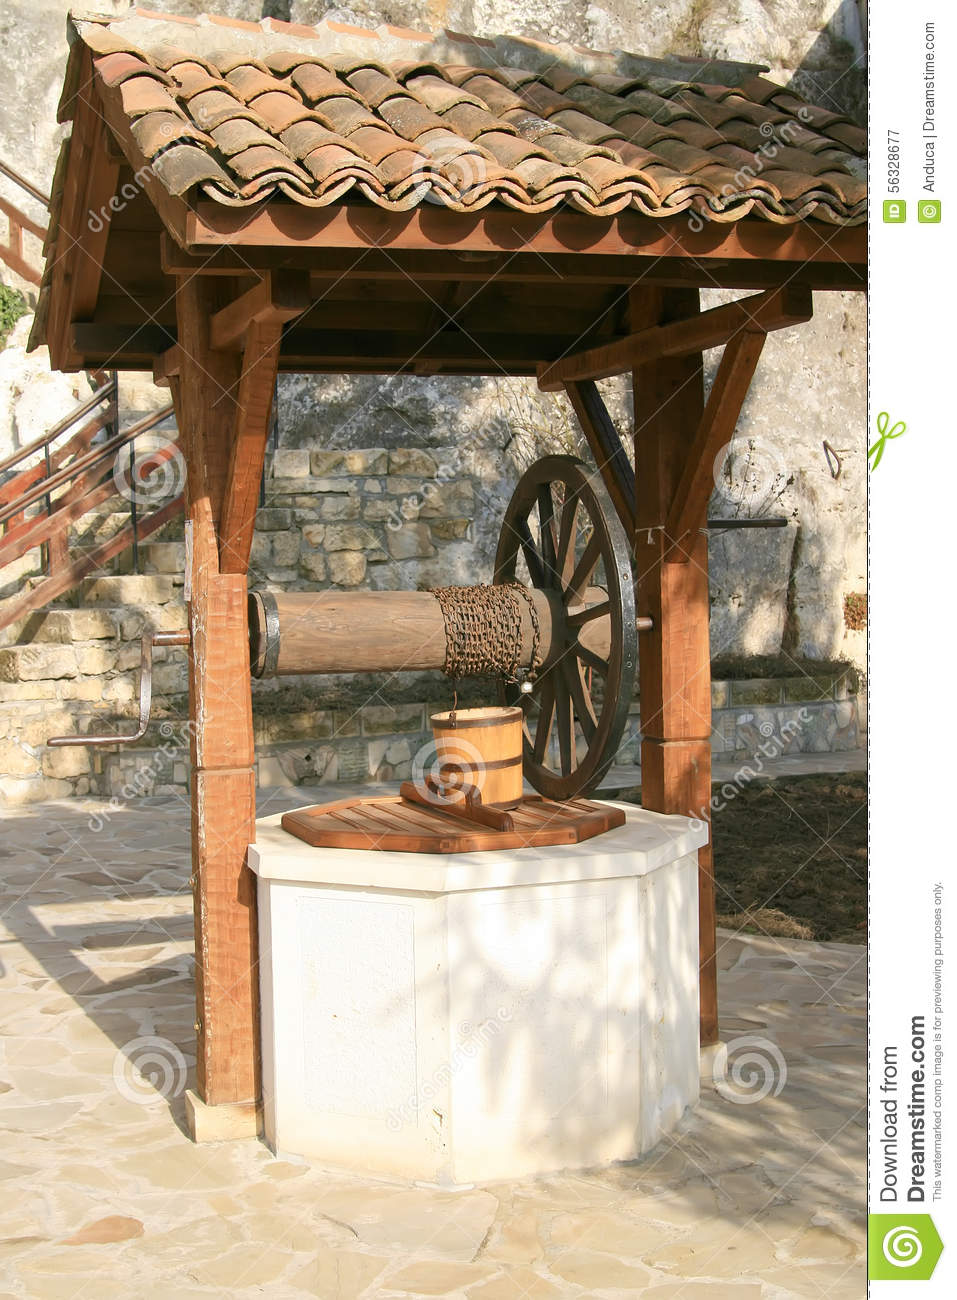 Old well at rock monastery